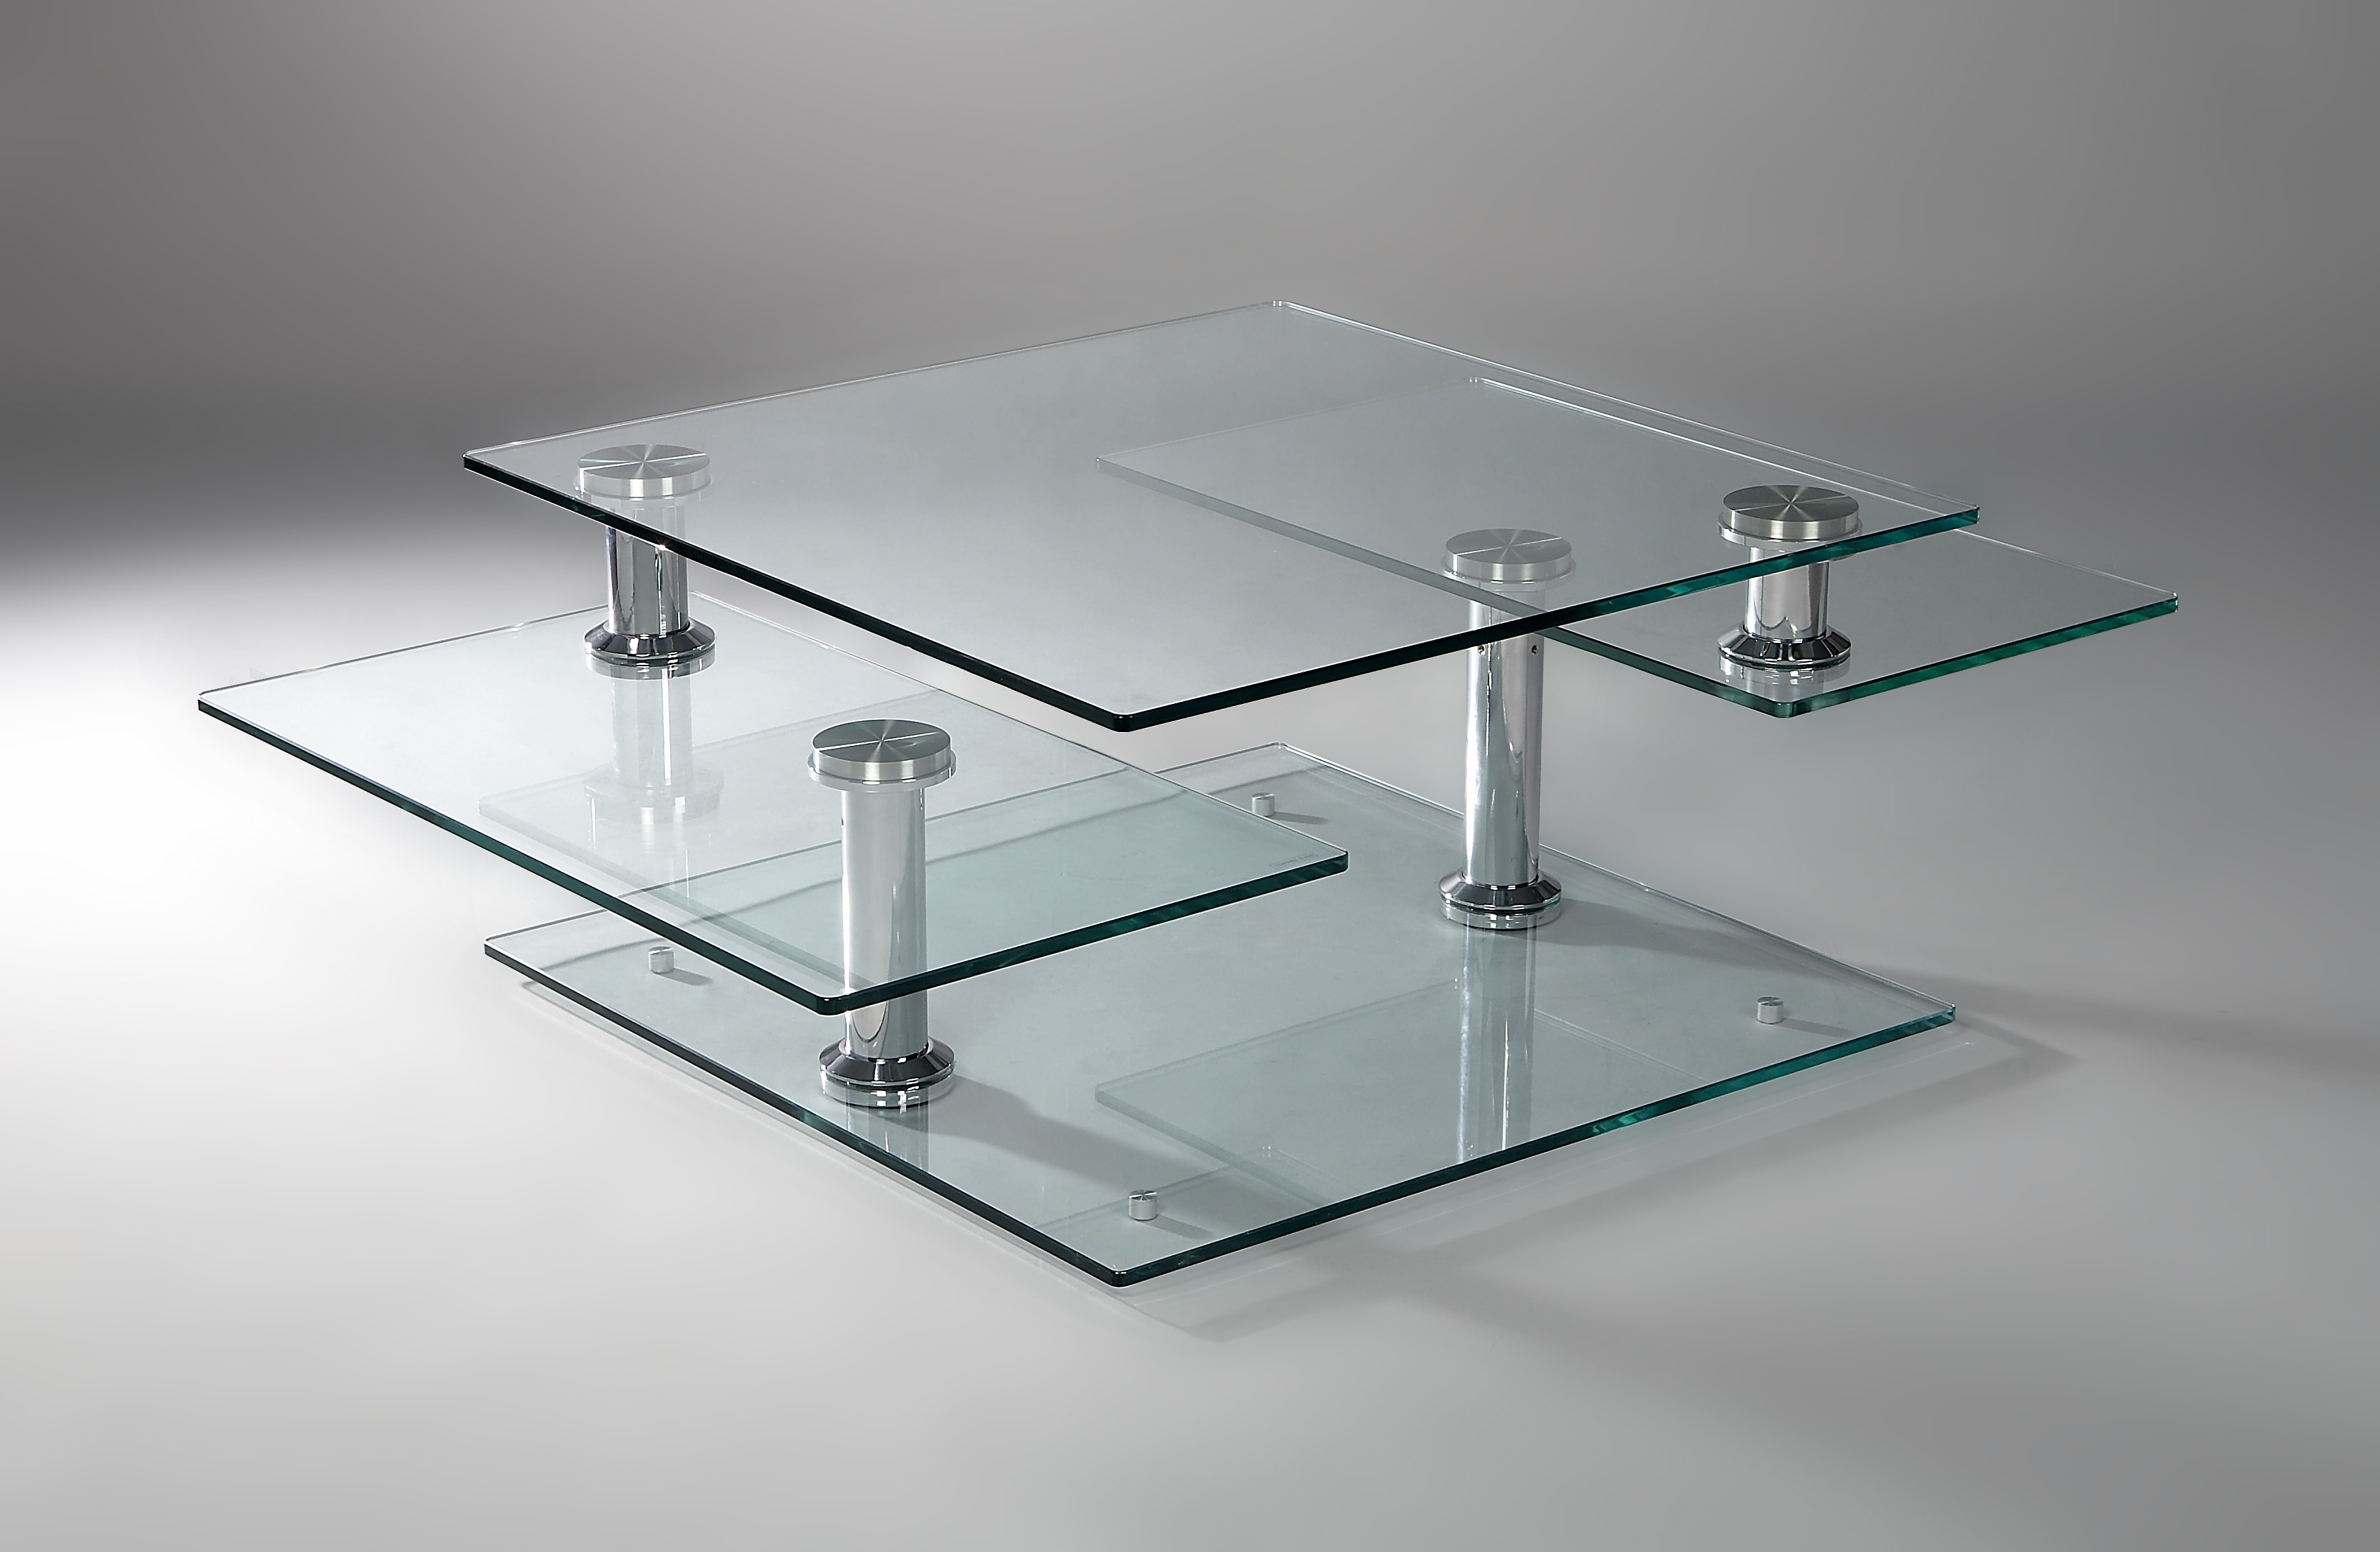 Table basse design en verre trempe for Table basse en verre trempe